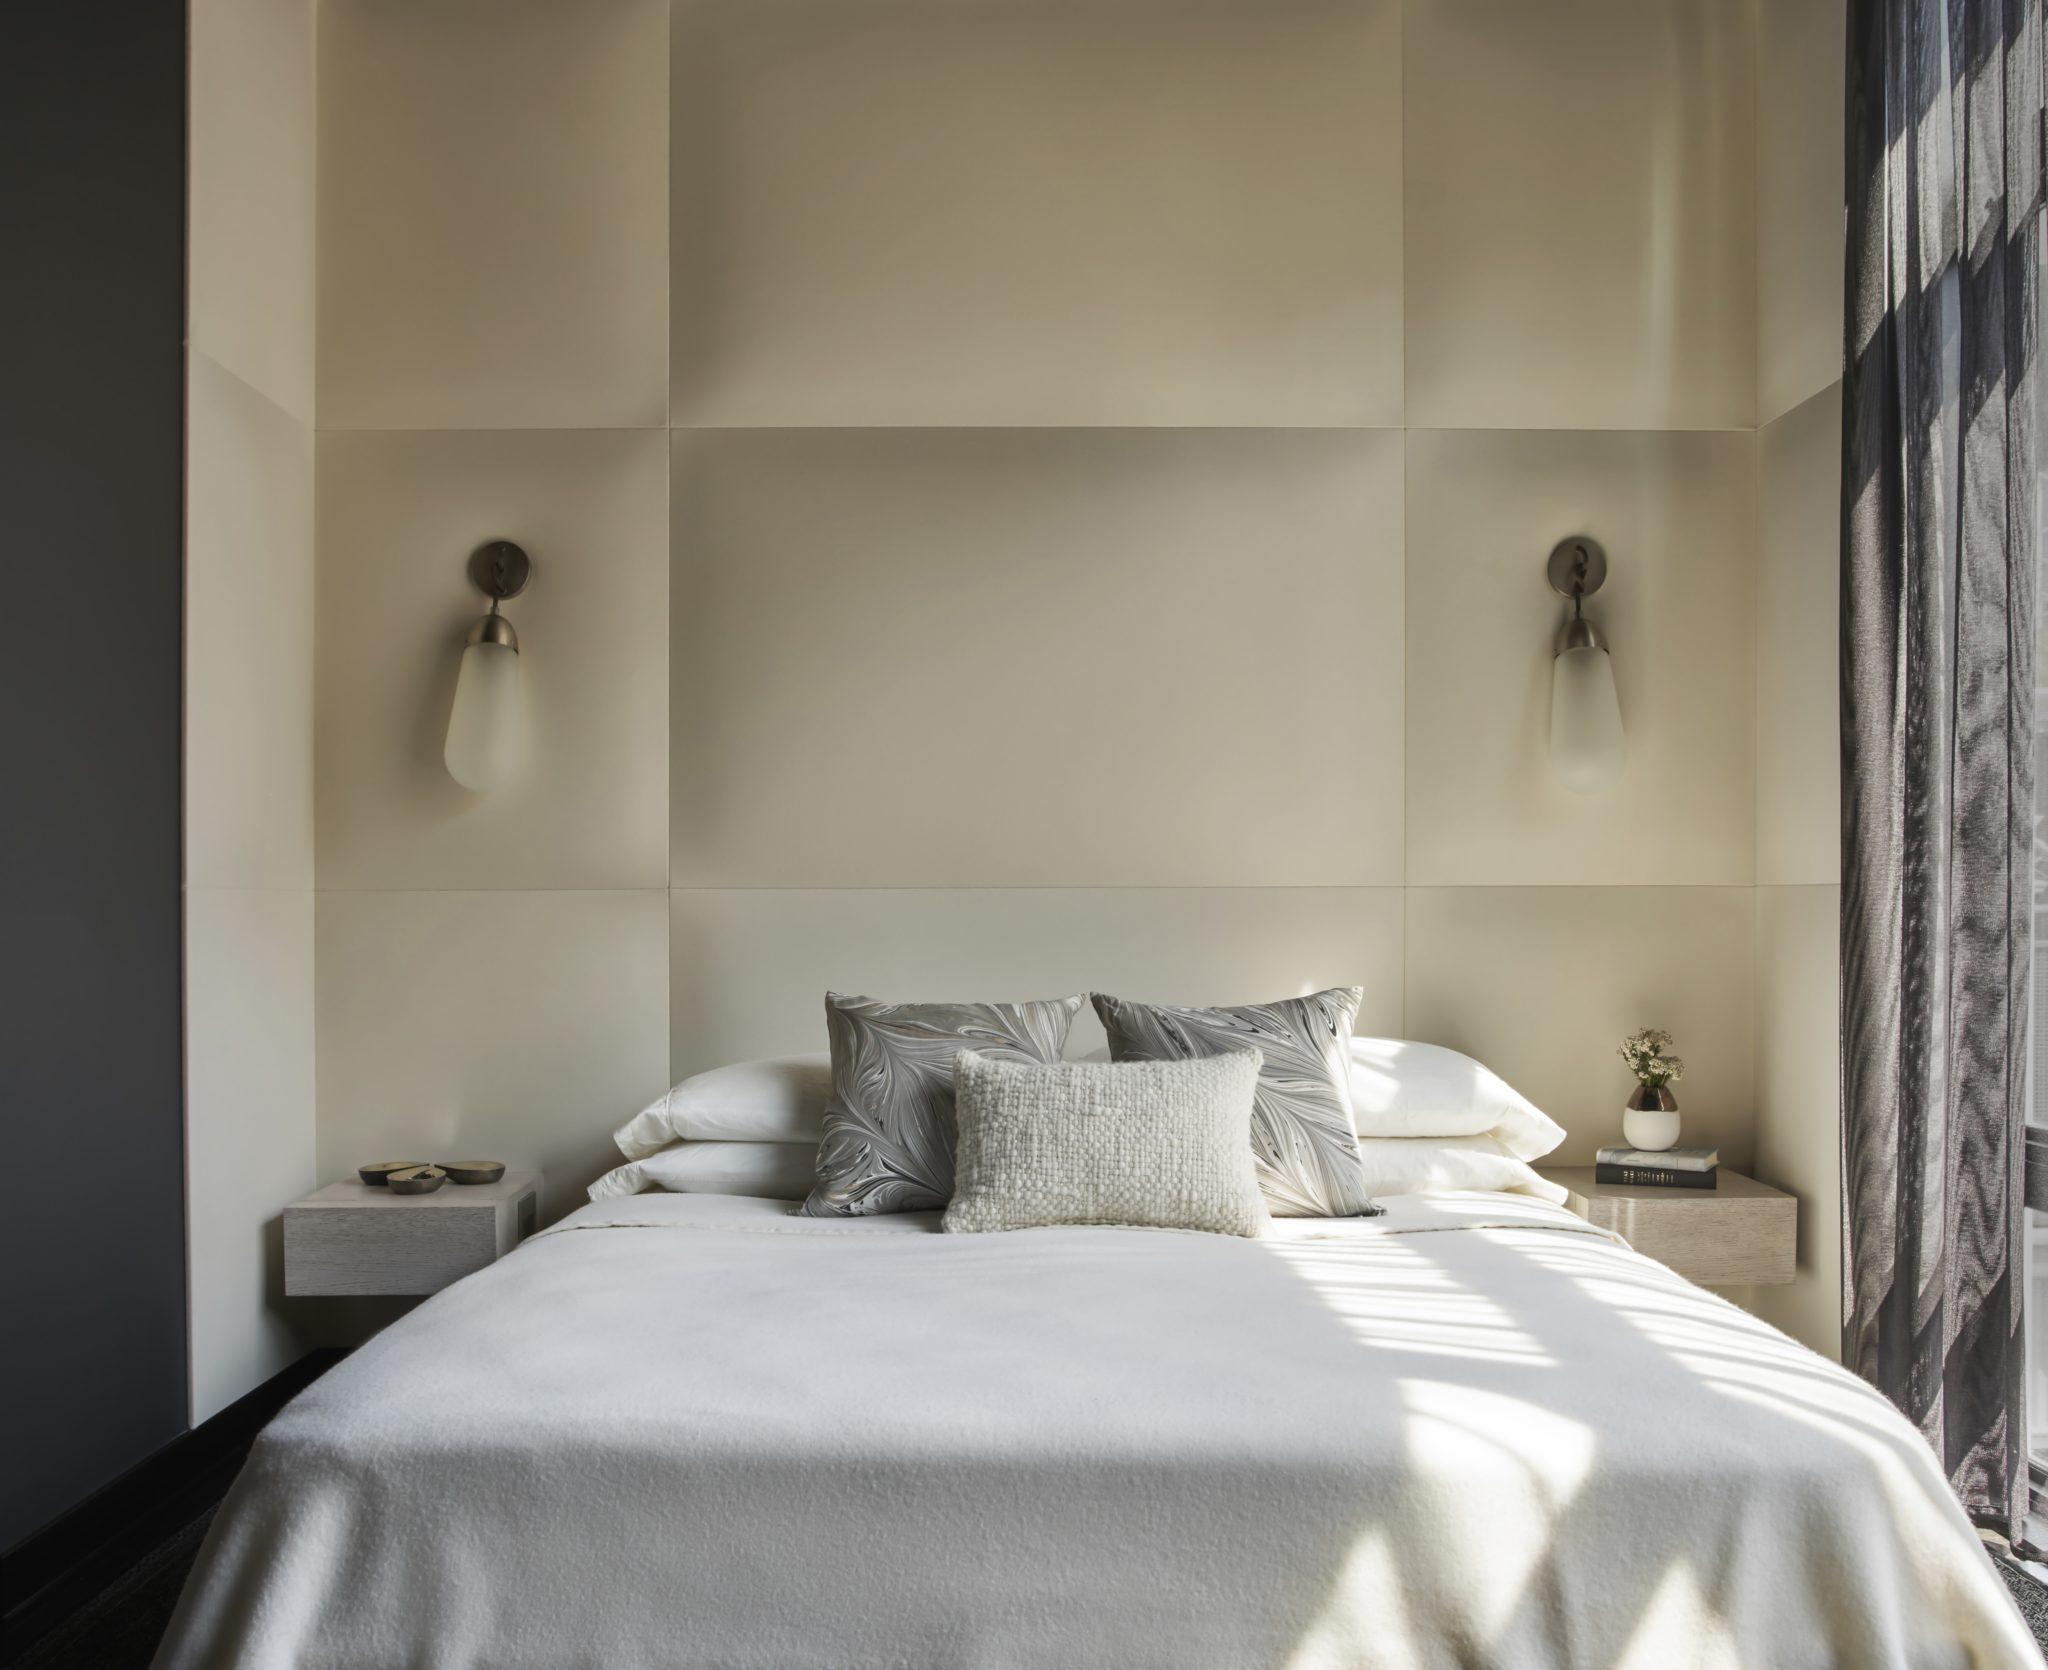 River North Residence Master Bedroom by STUDIO GILD